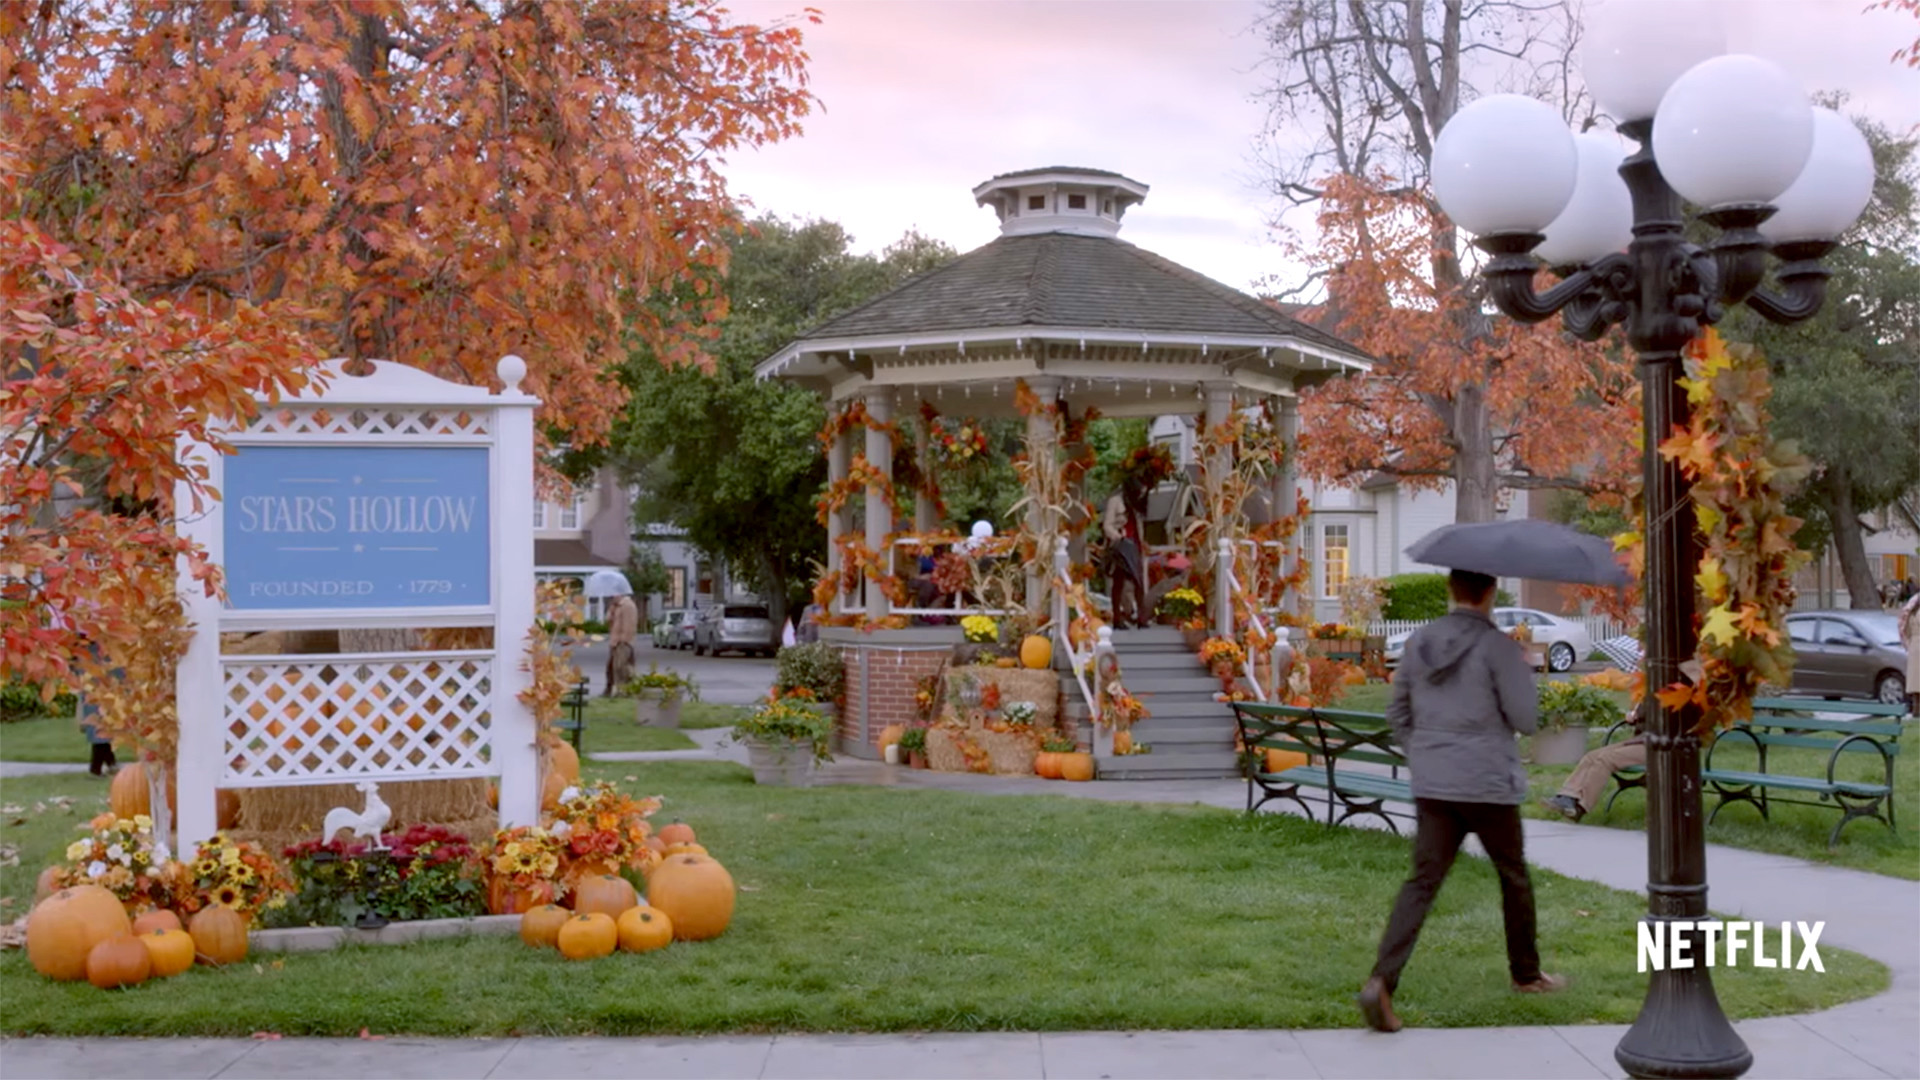 Res: 1920x1080, 'Gilmore Girls' fan festival is coming to town that inspired Stars Hollow -  TODAY.com